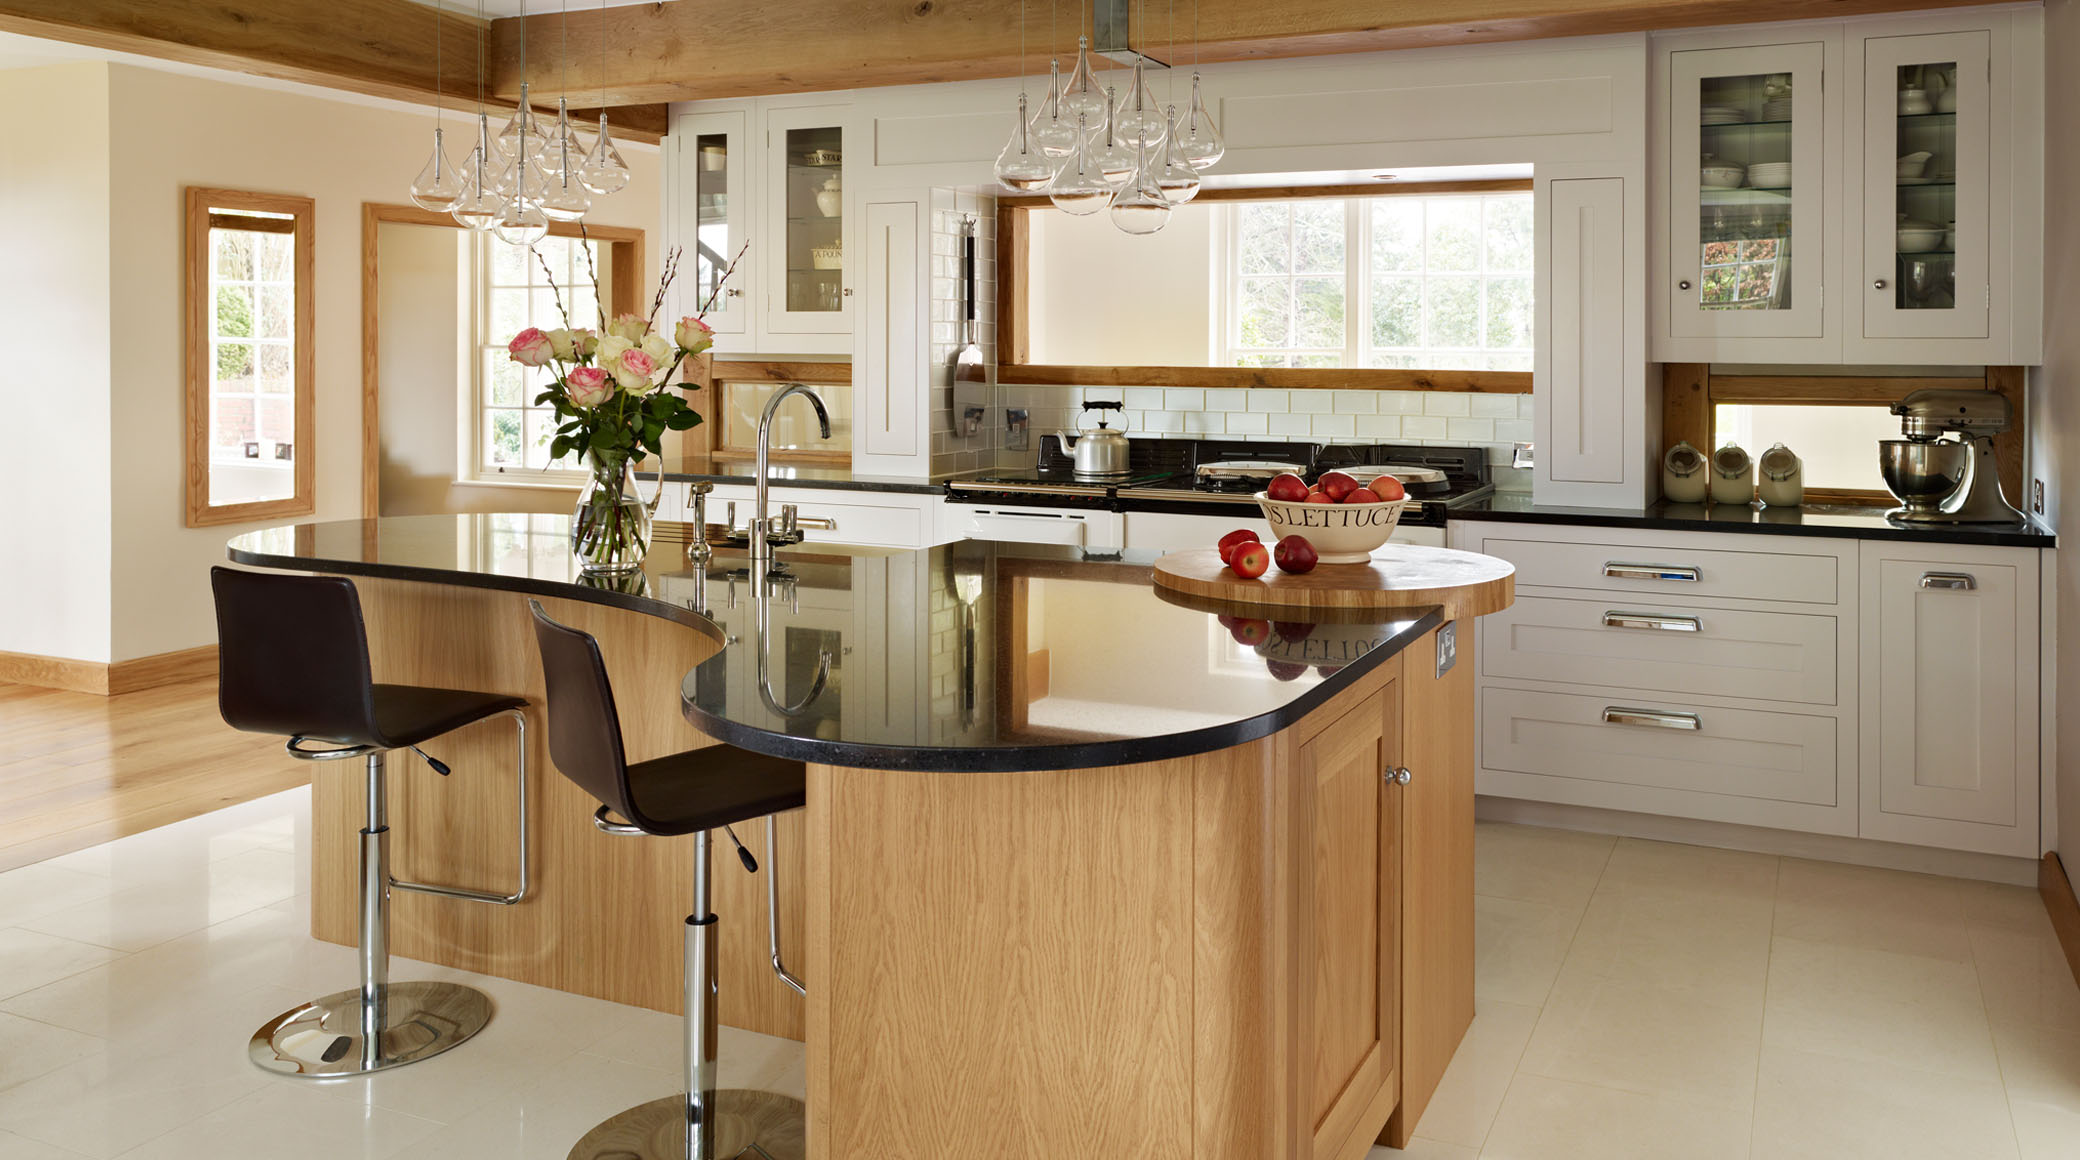 depiction of curved kitchen island ideas for modern homes